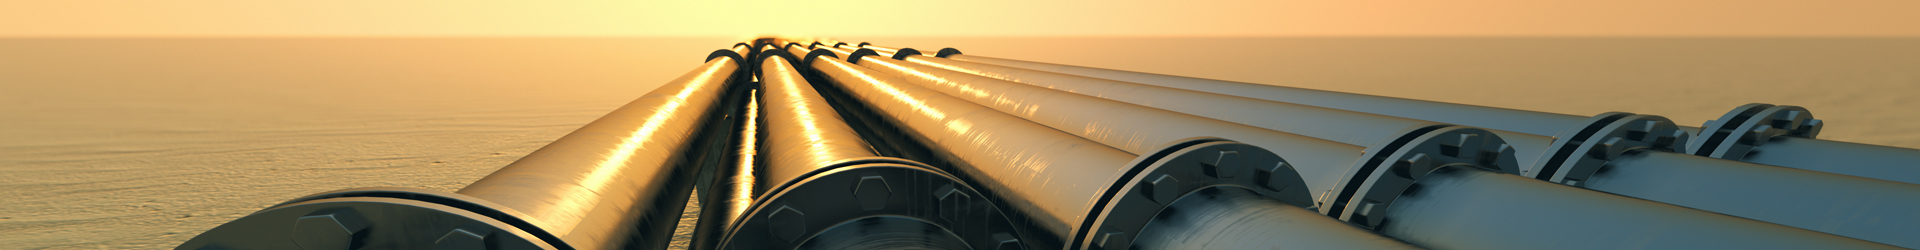 Pipeline at sunset.  ©Shutterstock.com/DabartiCGI